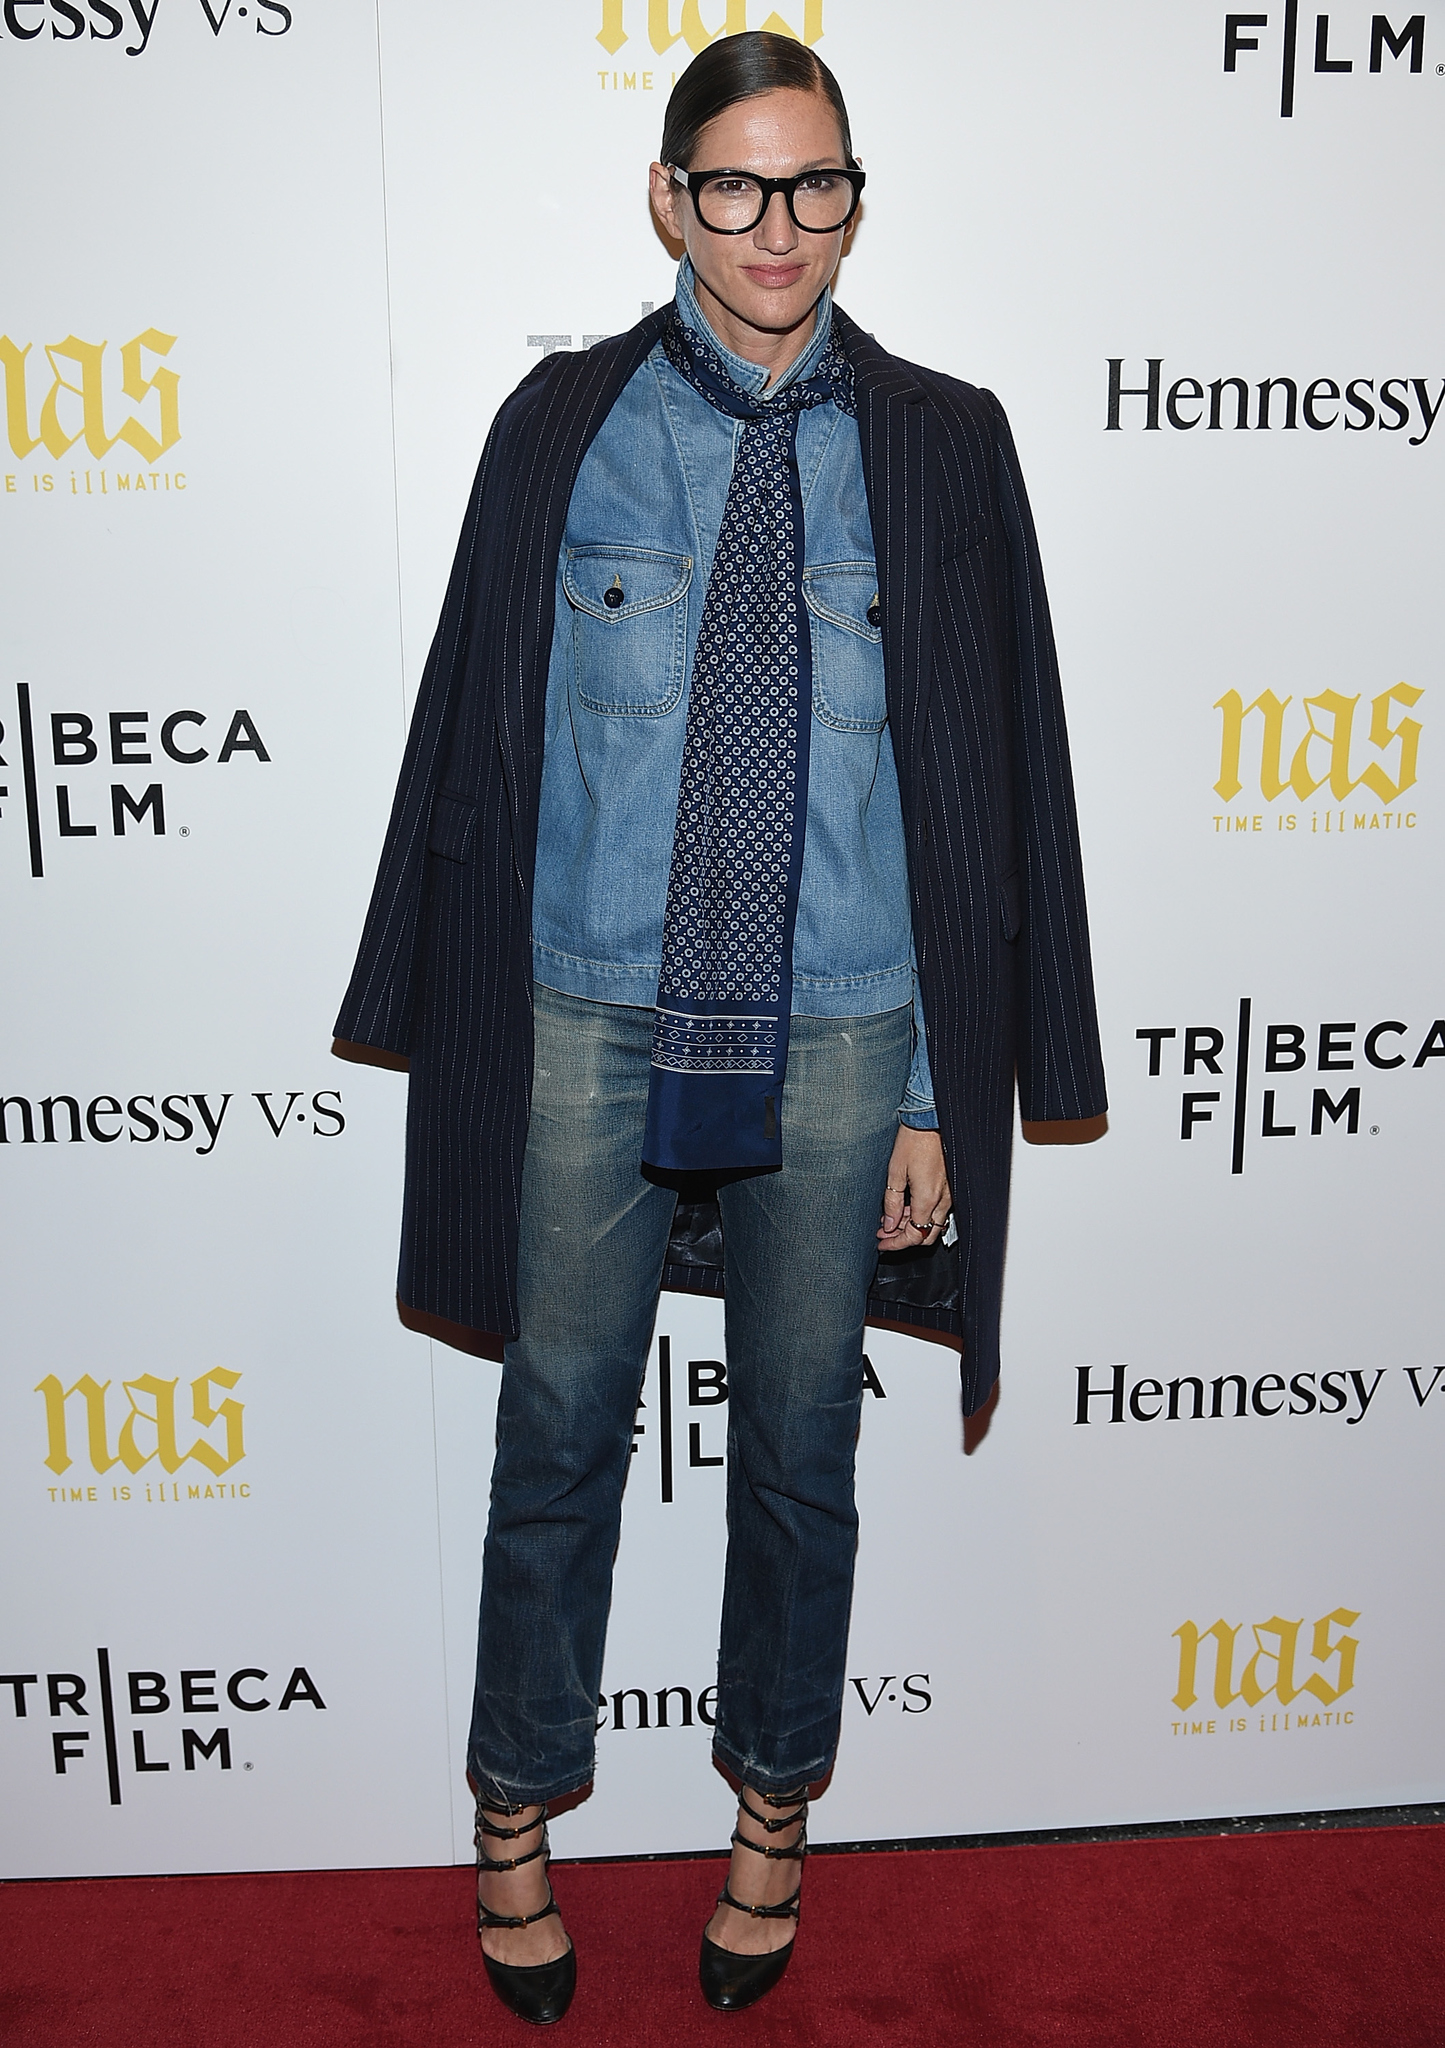 Jenna Lyons at an event for Time Is Illmatic (2014)